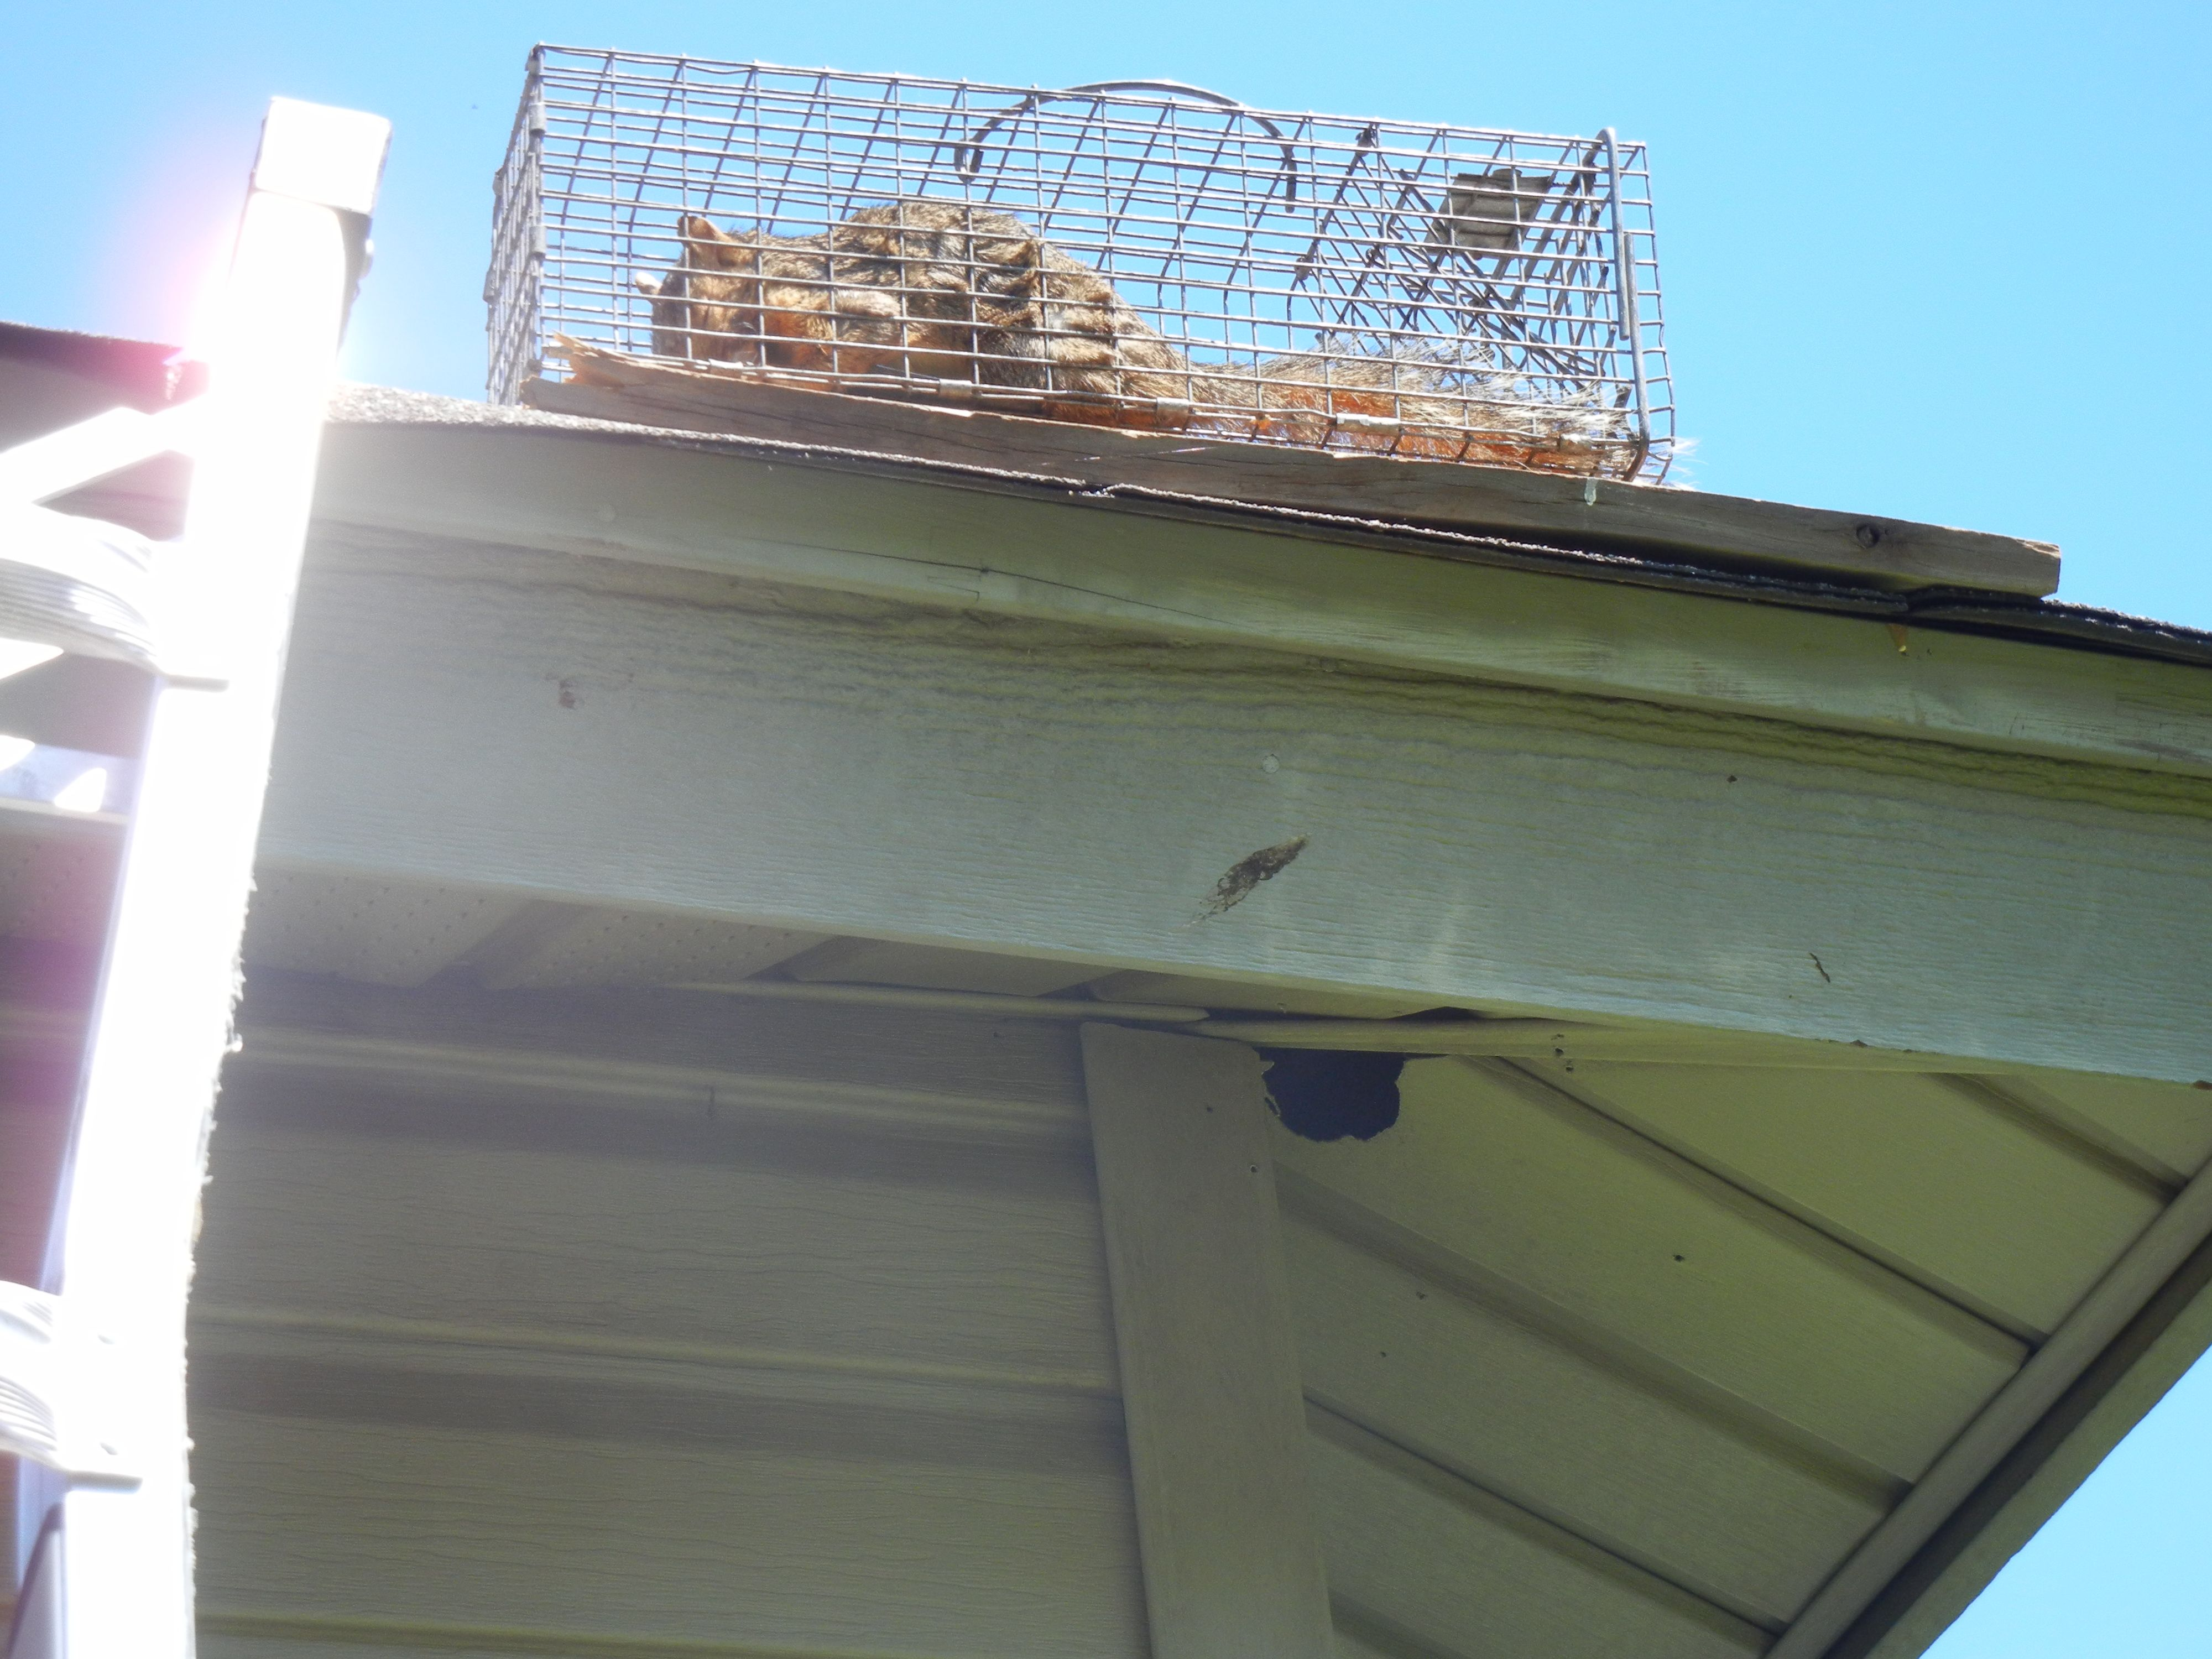 Caught This Squirrel On The Roof Before He Went Into His Hole He Made In The Siding Http Www Abolishpestwild Rat Exterminator Rodent Control Rodent Removal